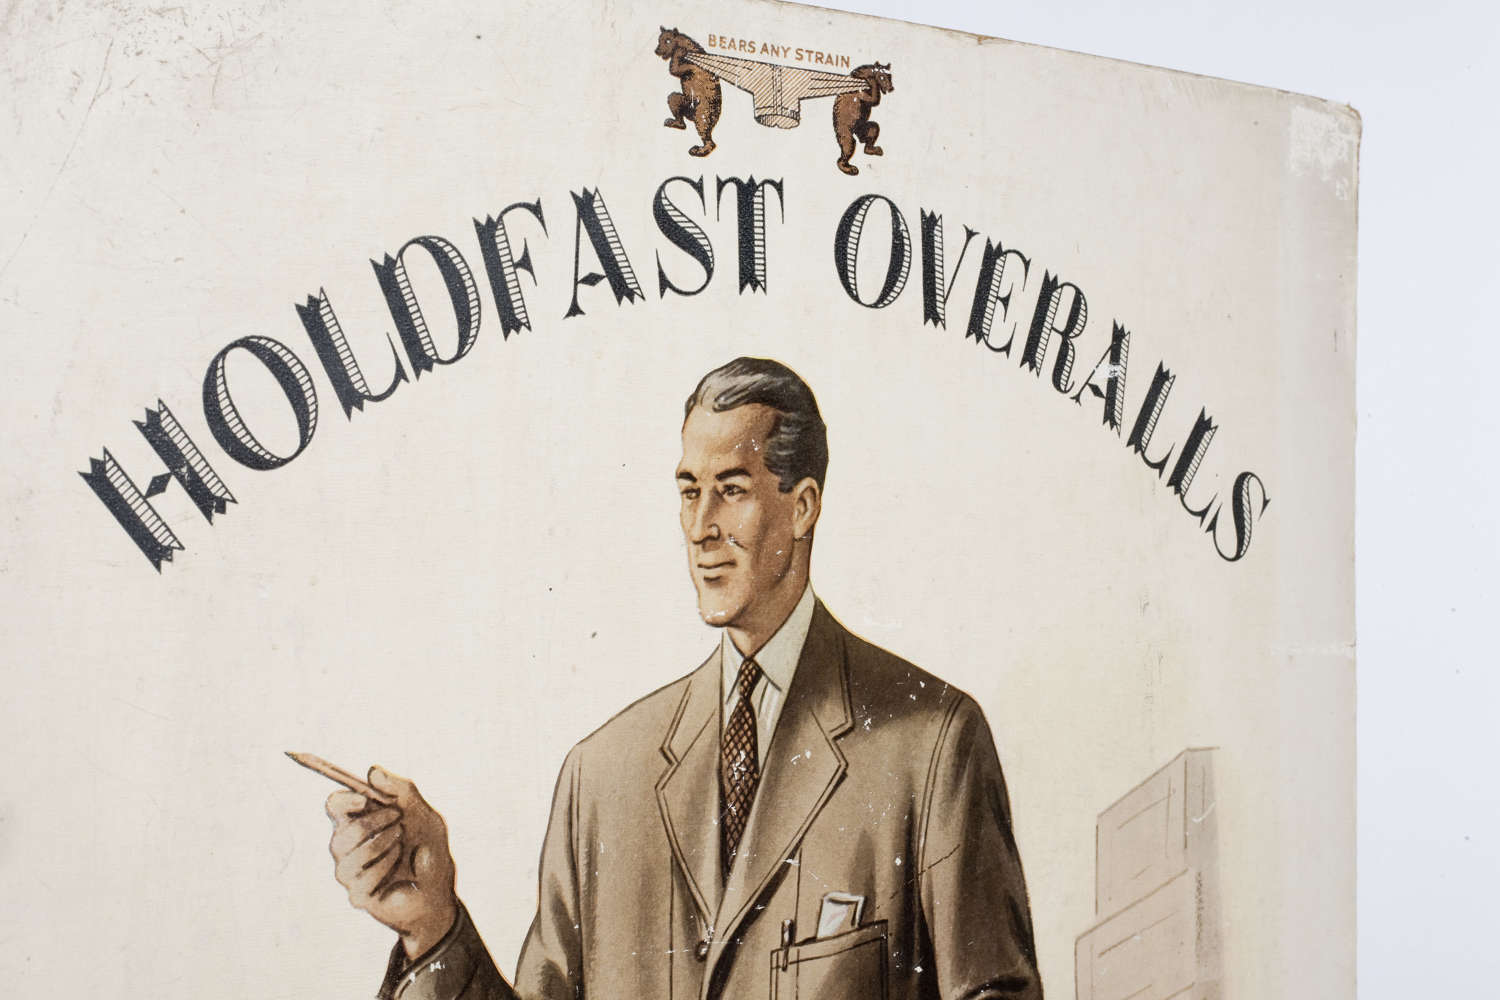 Original advertising showcard for Holdfast Overalls